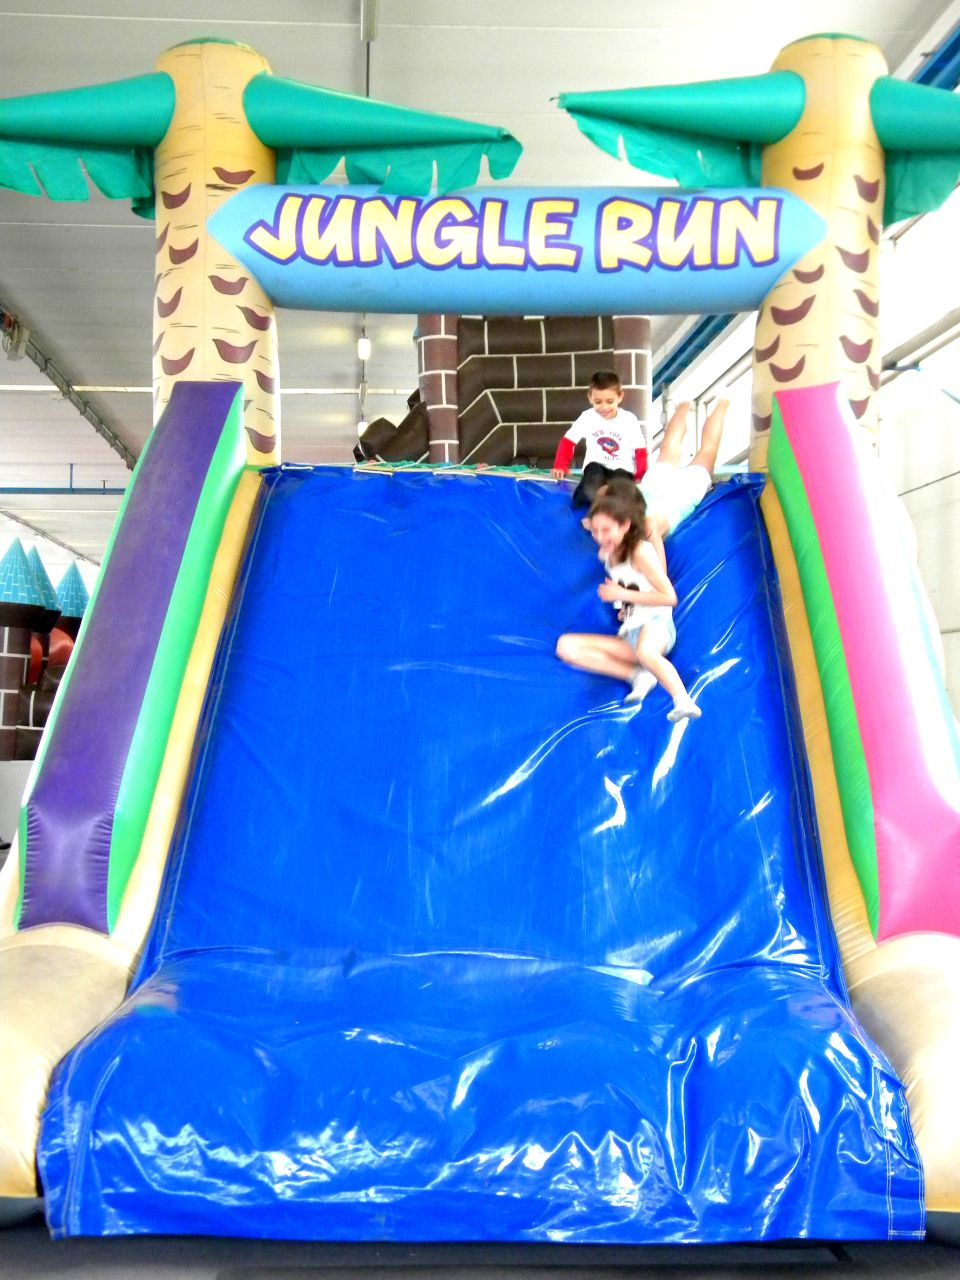 Jungle Run - 17.JPG